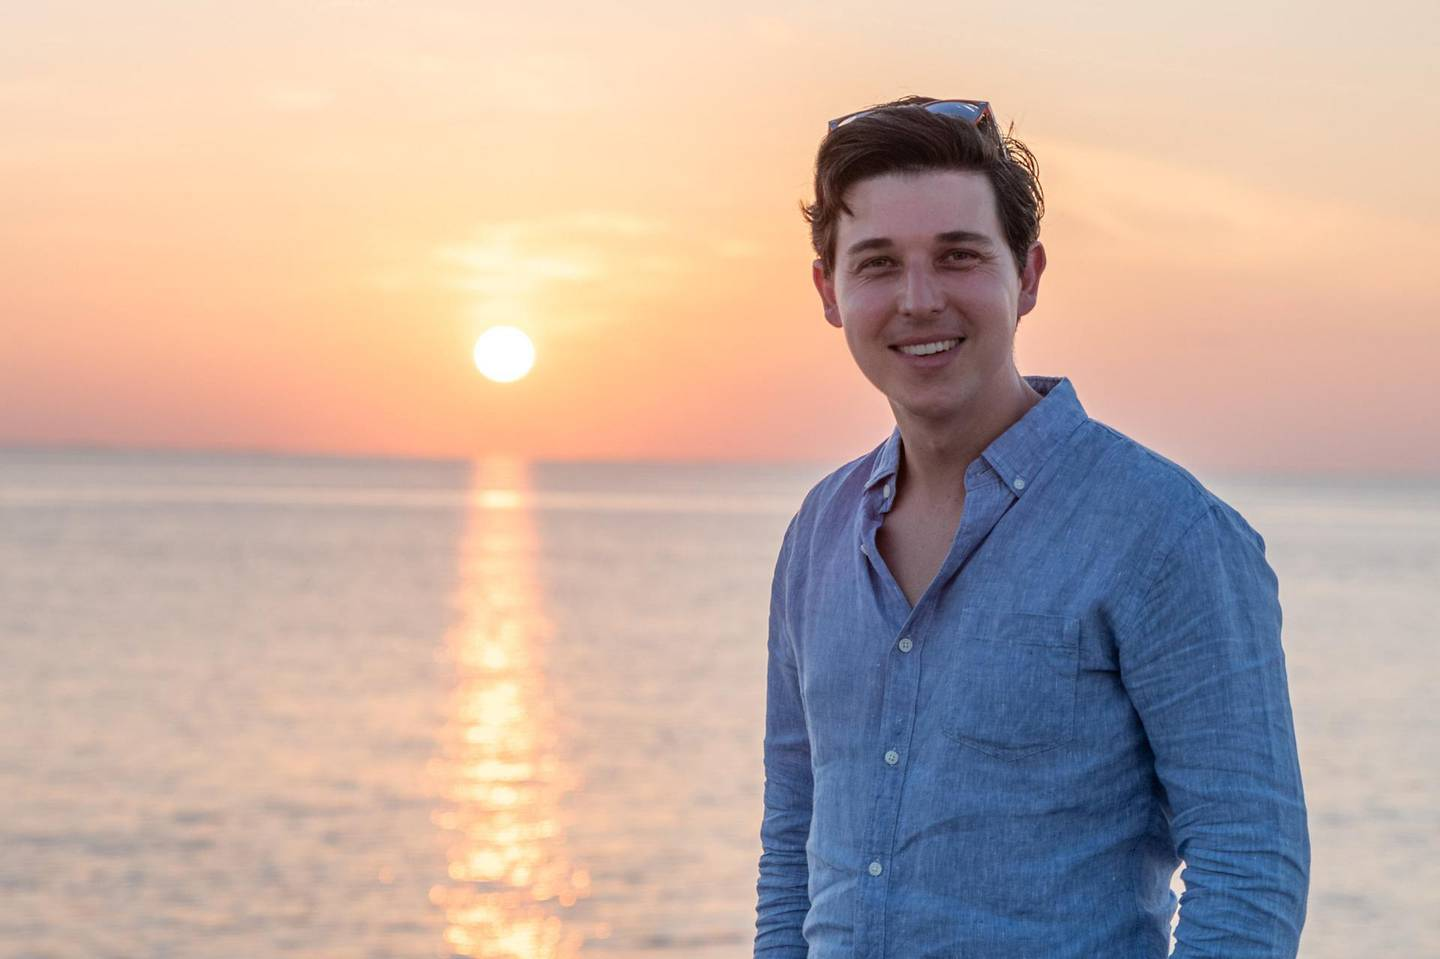 Jandré Nieuwoudt, a millennial, owns a property in Dubai and also invests in index funds. Courtesy: Jandré Nieuwoudt